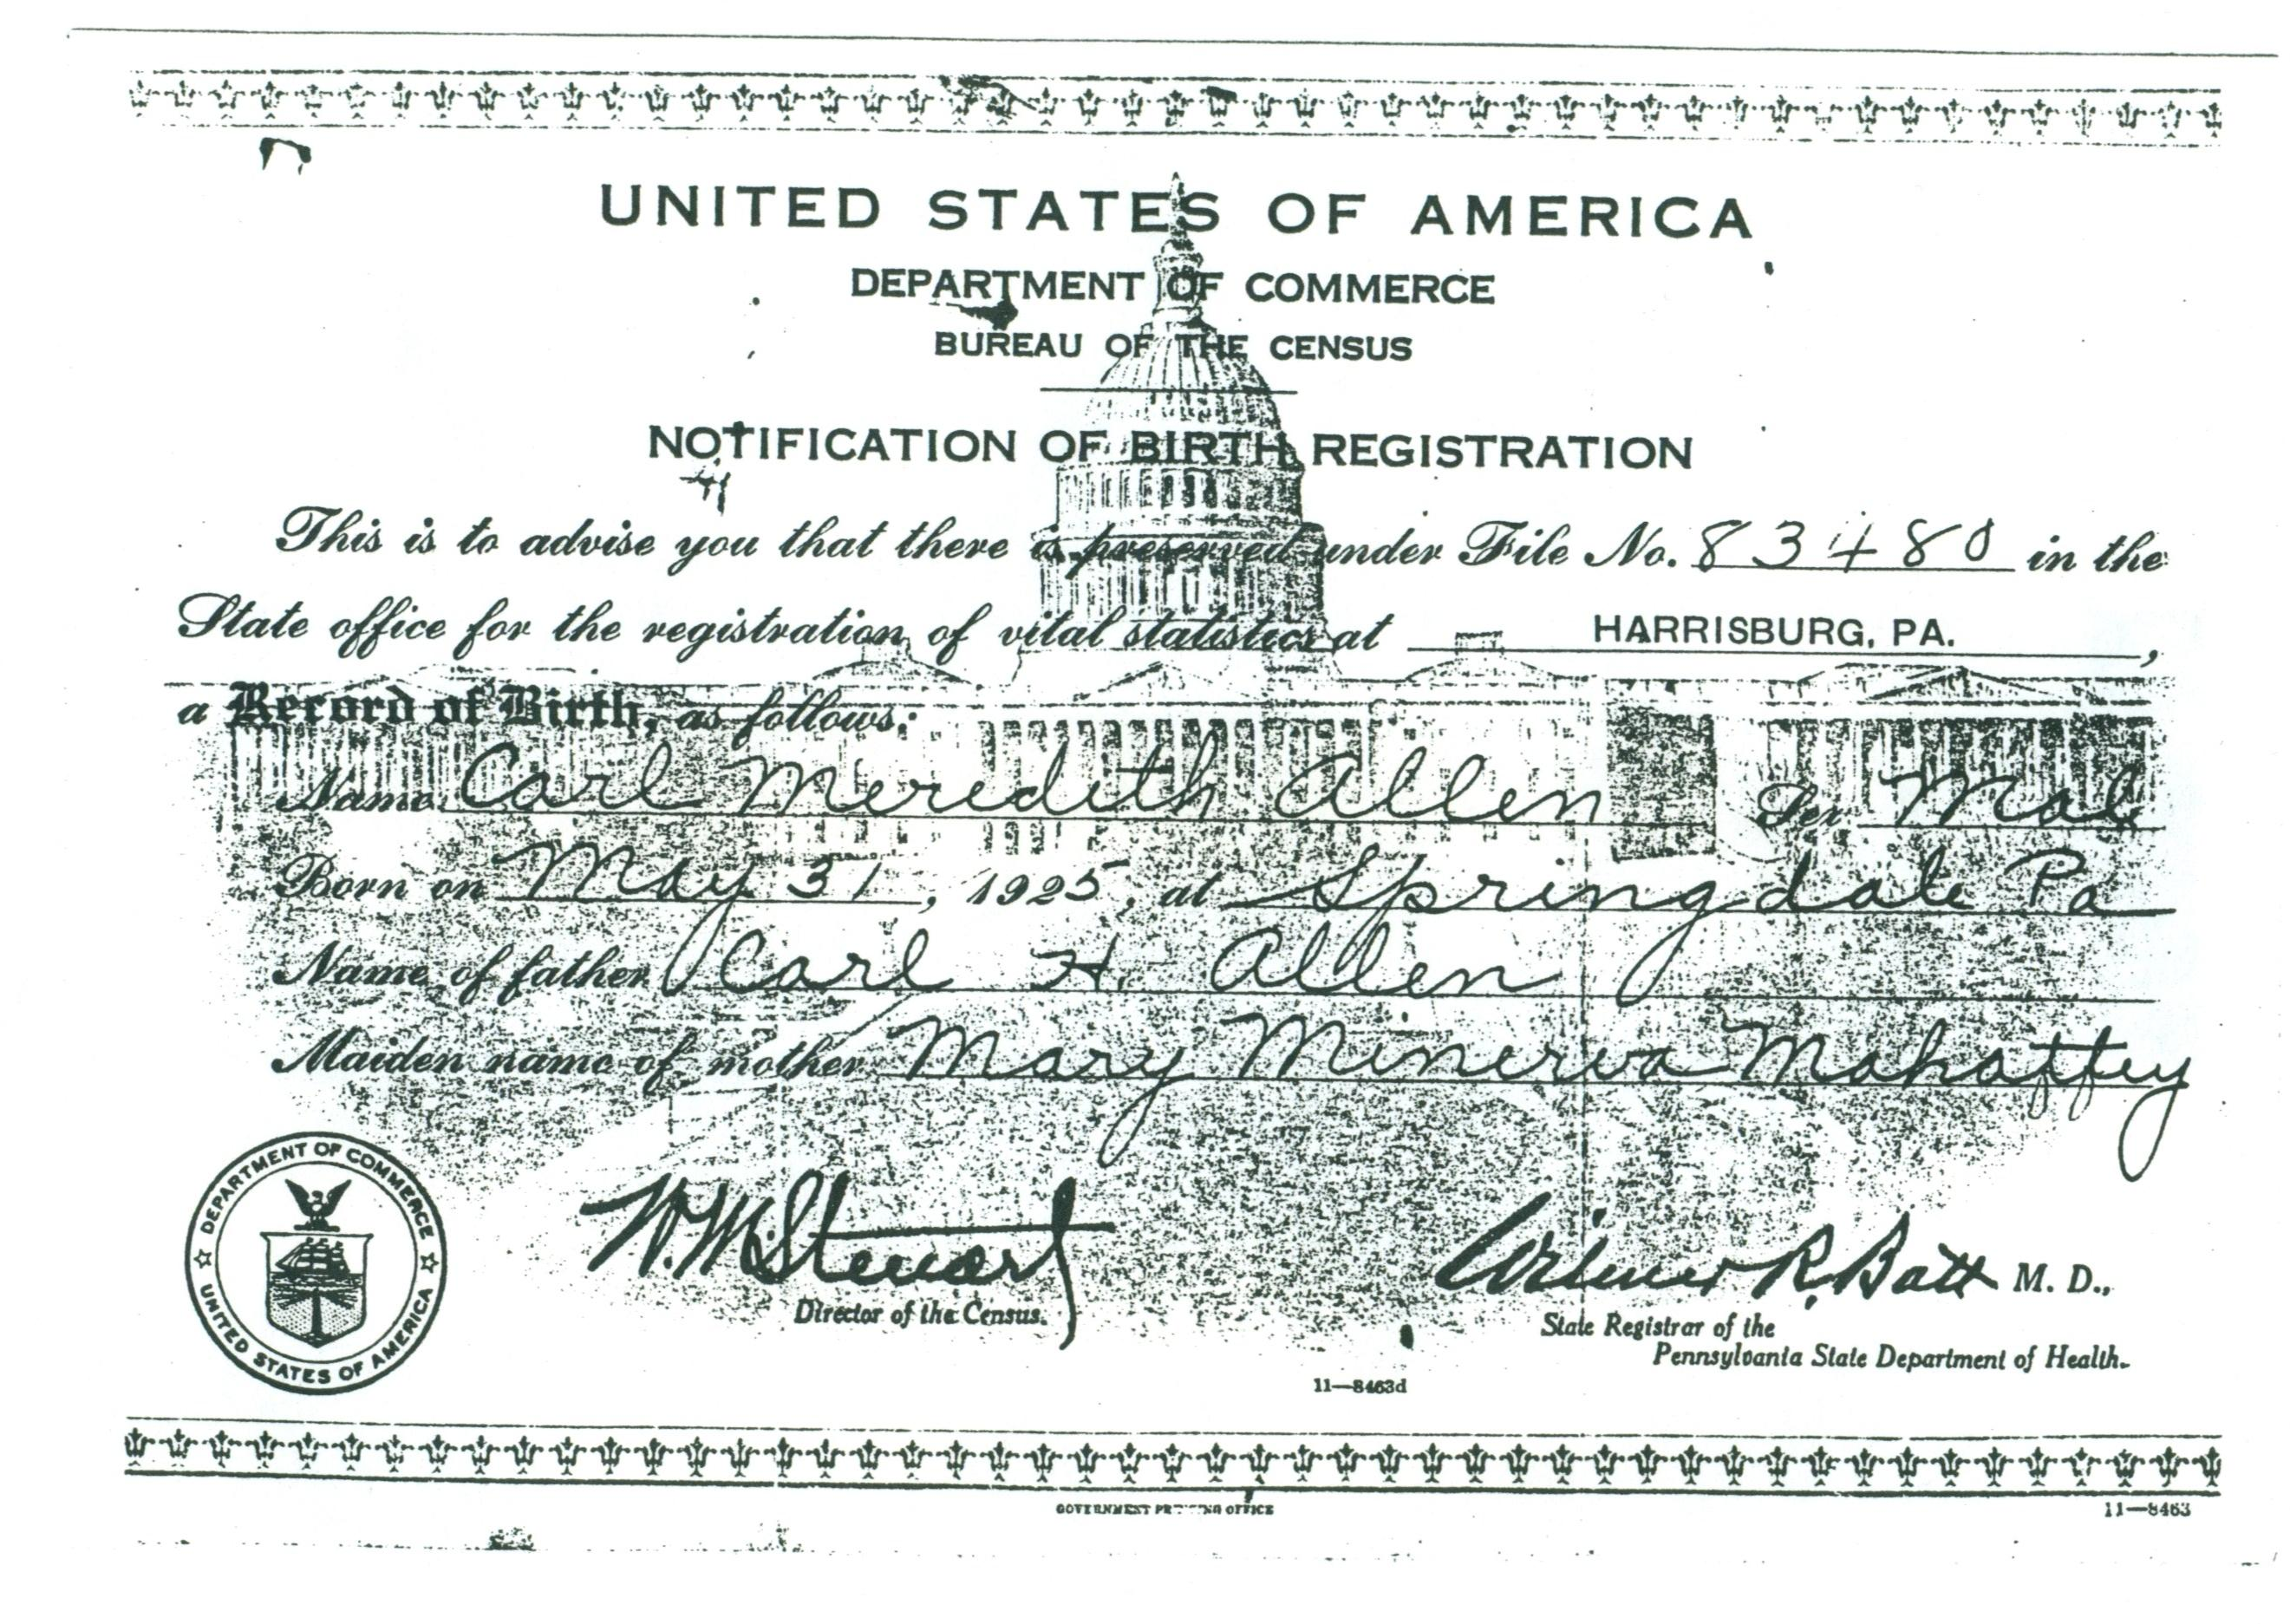 (RG) May-31, 1925 Notice of Birth Registration for Carl Meredith Allen aka Carlos Miguel Allende